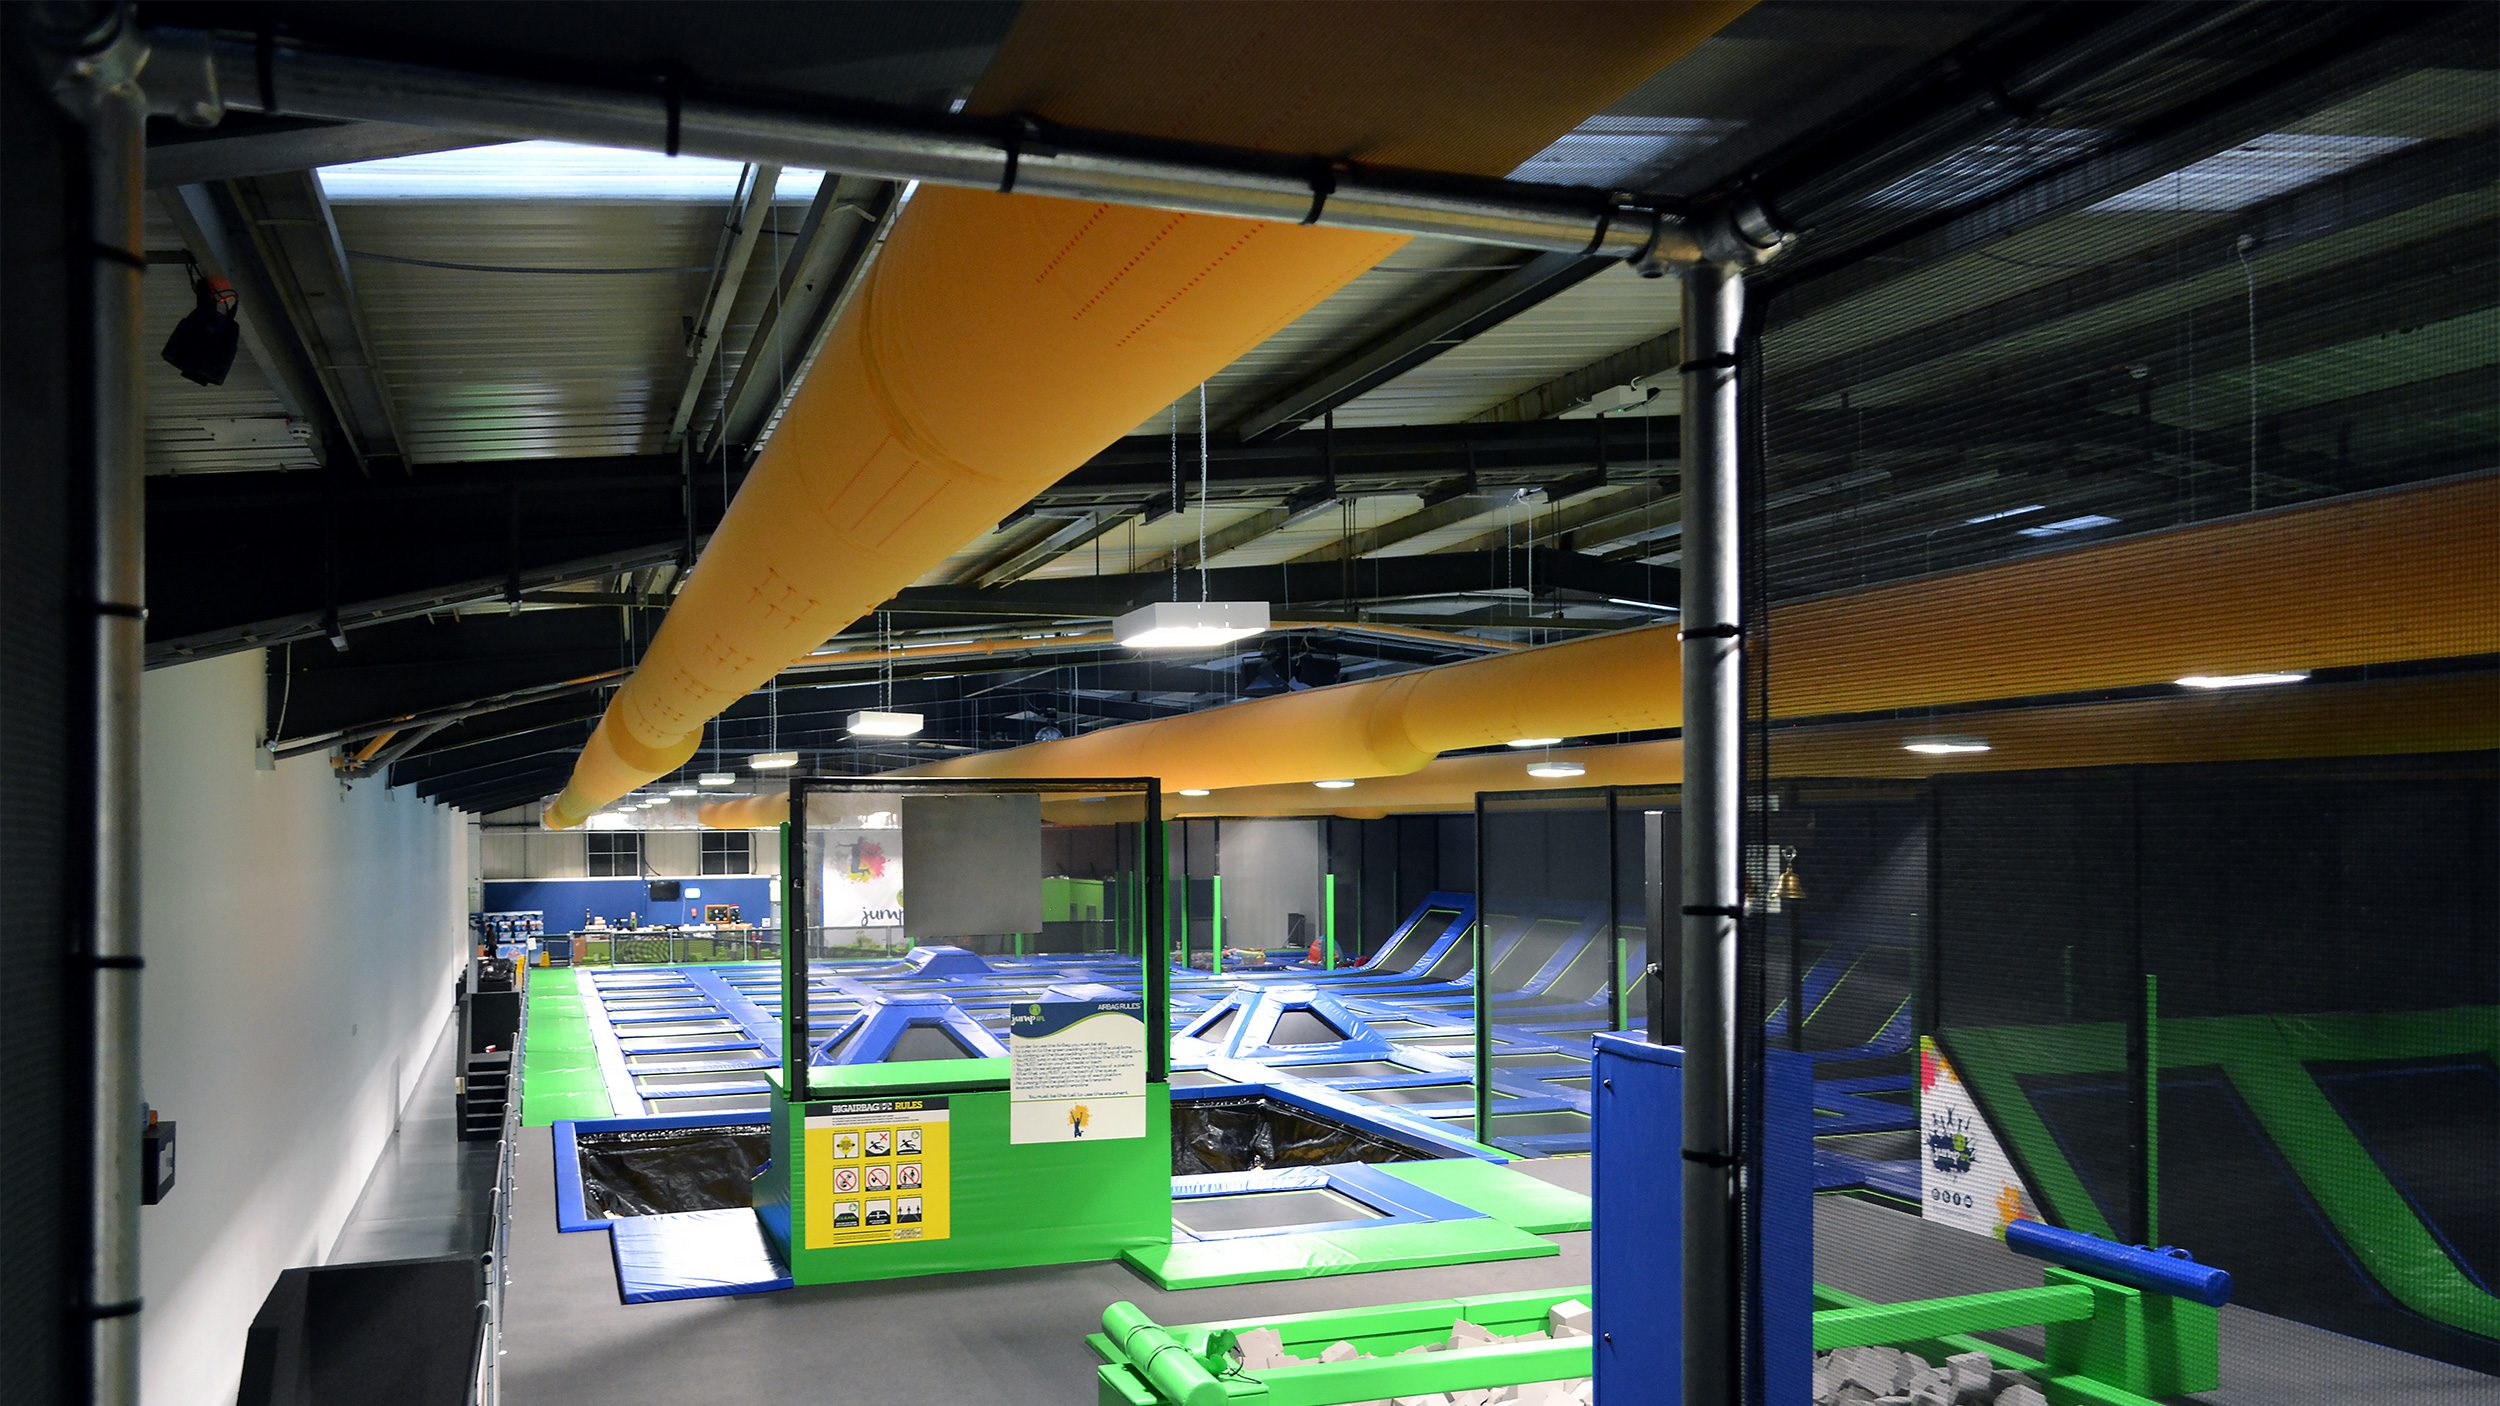 Commercial textile ducts for trampoline park